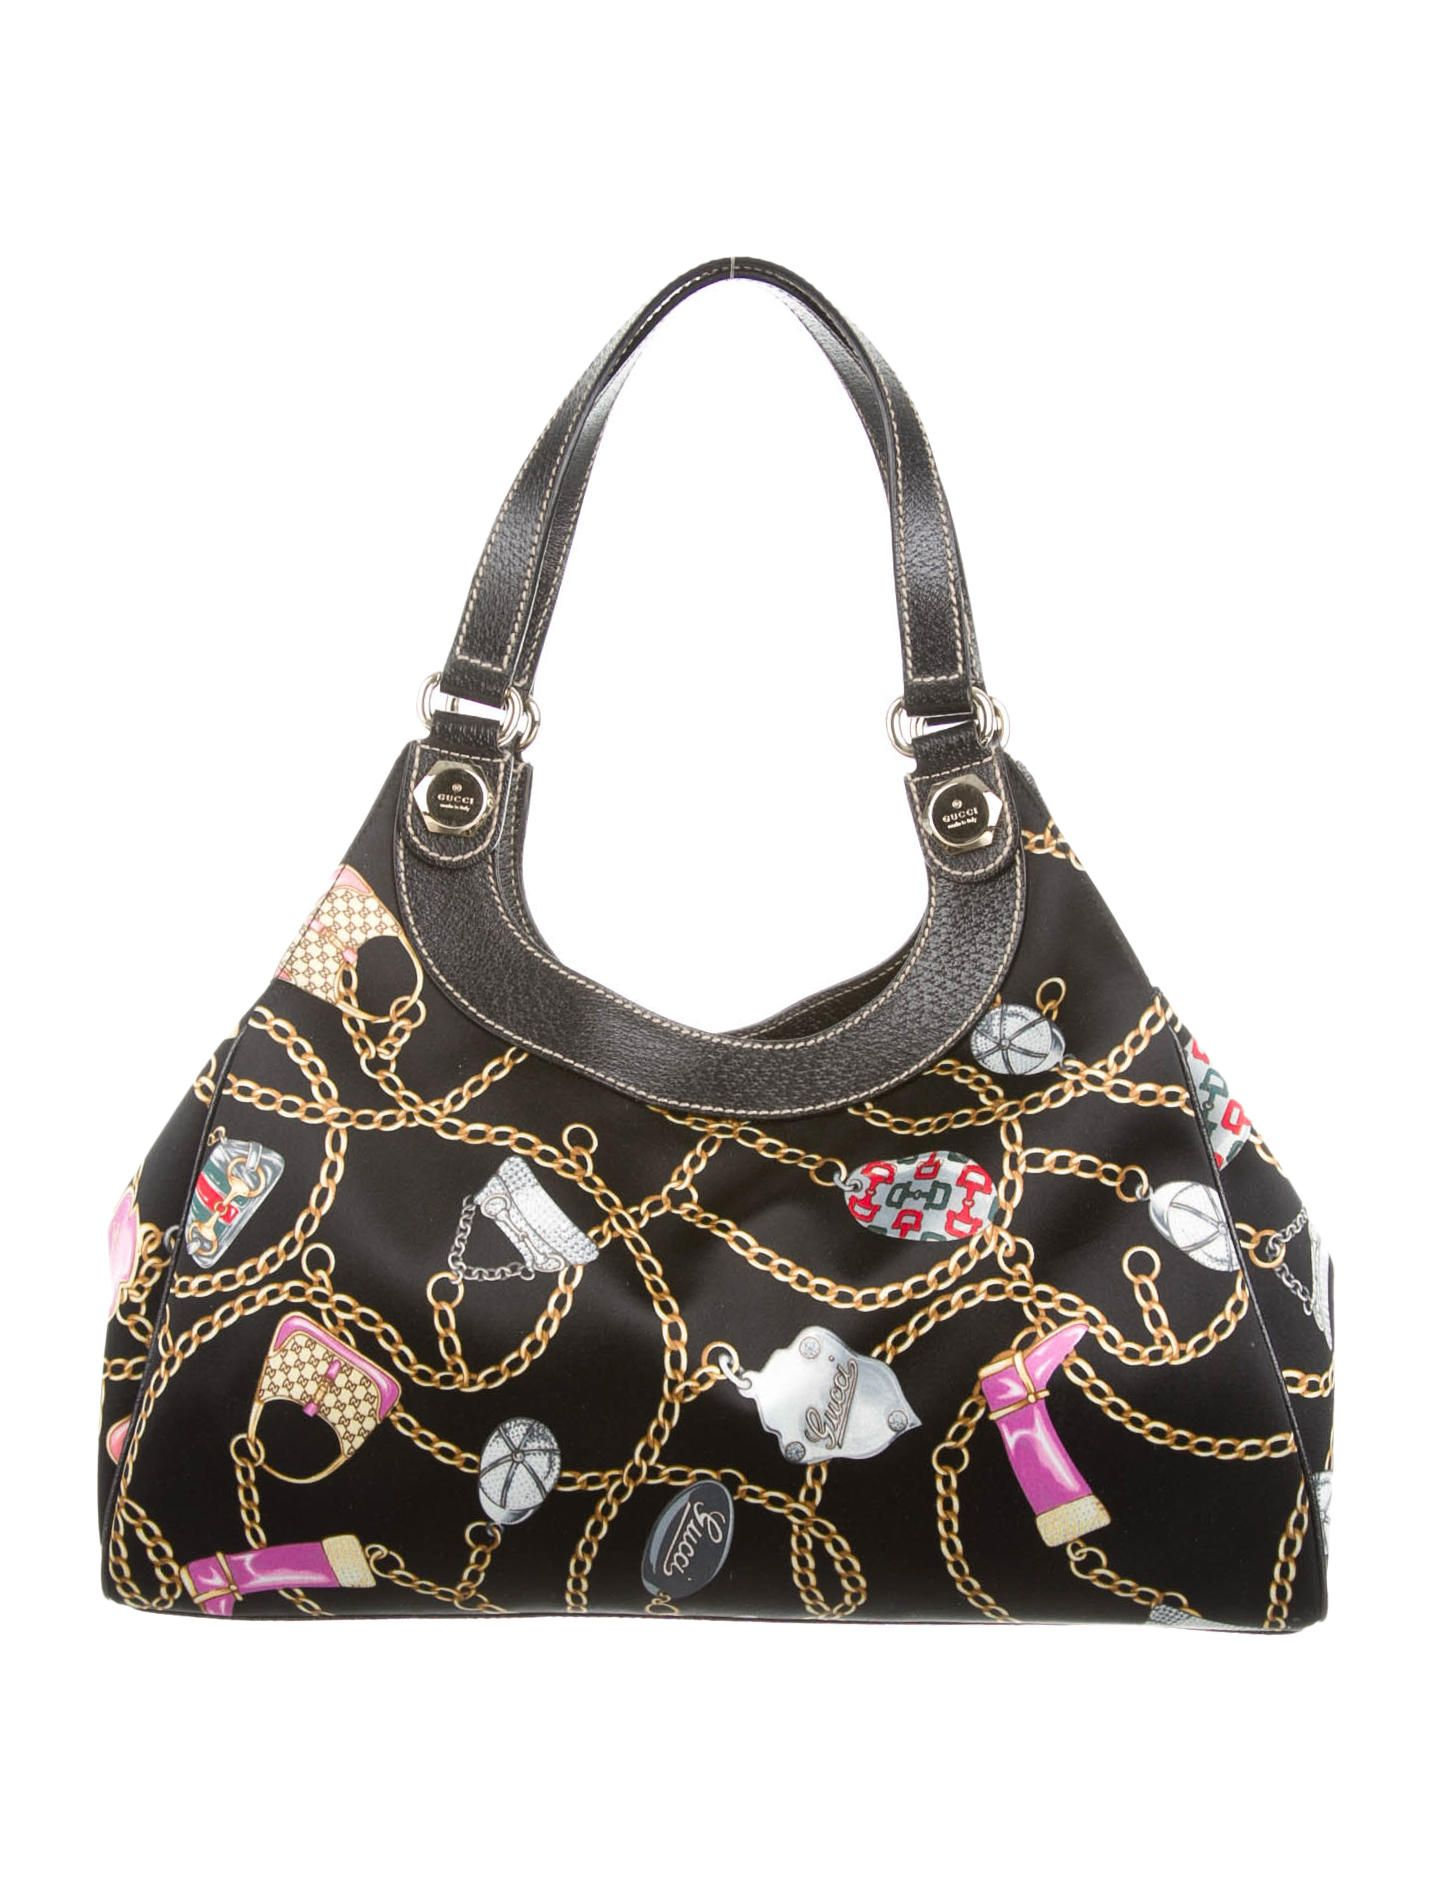 c9f289f79f35 Black and multicolor satin Gucci Charmy shoulder bag with gold-tone  hardware, black leather